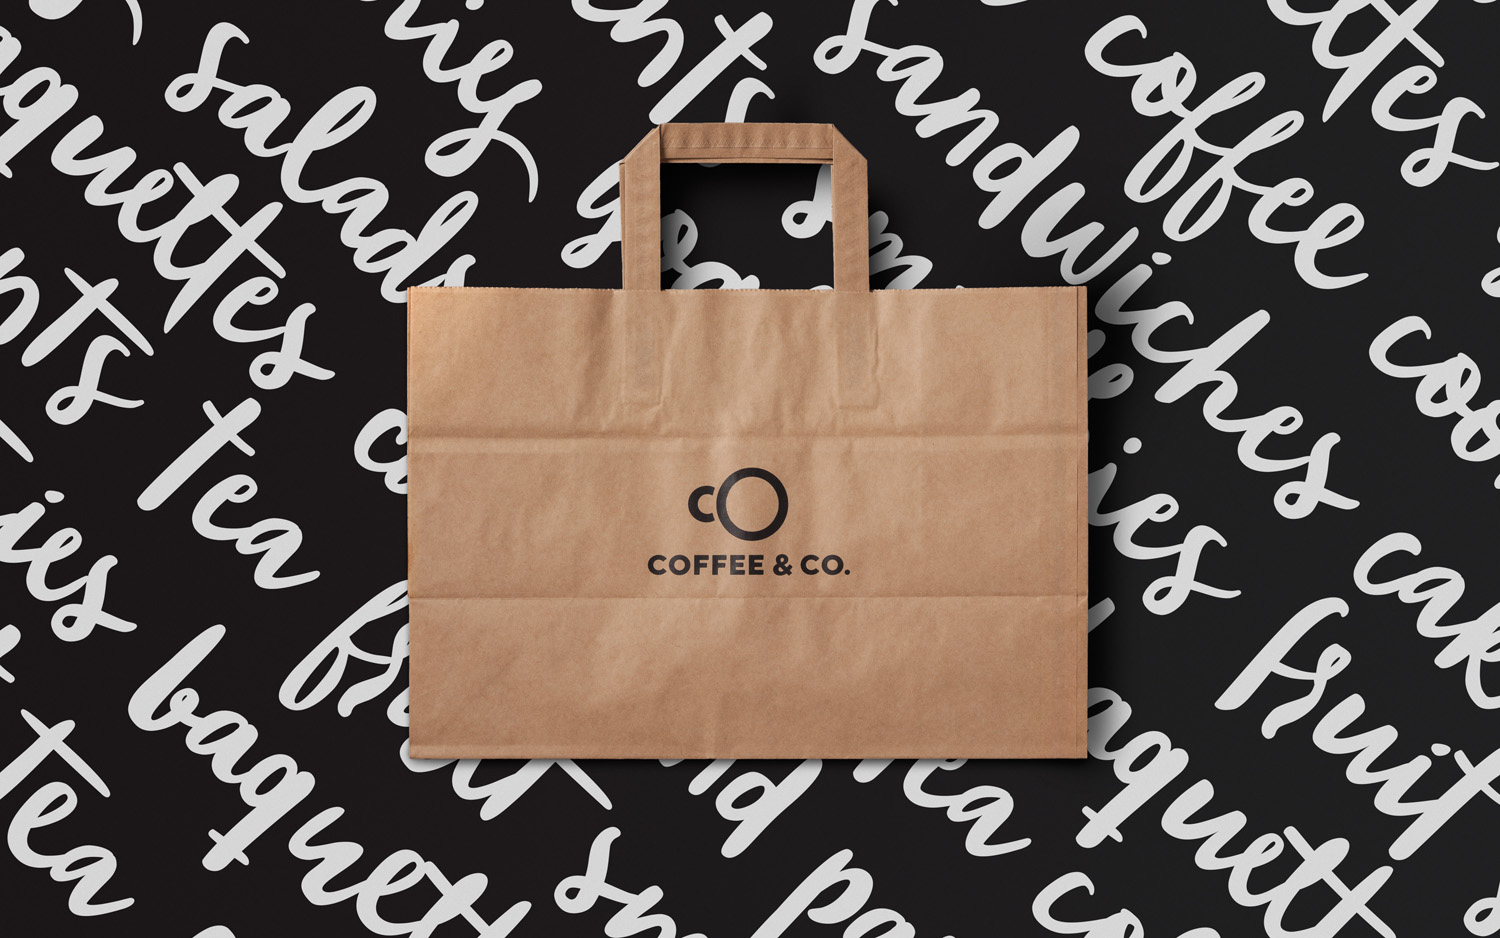 Brand identity and branded bag by Bond for cruise ship cafeteria concept Coffee & Co.